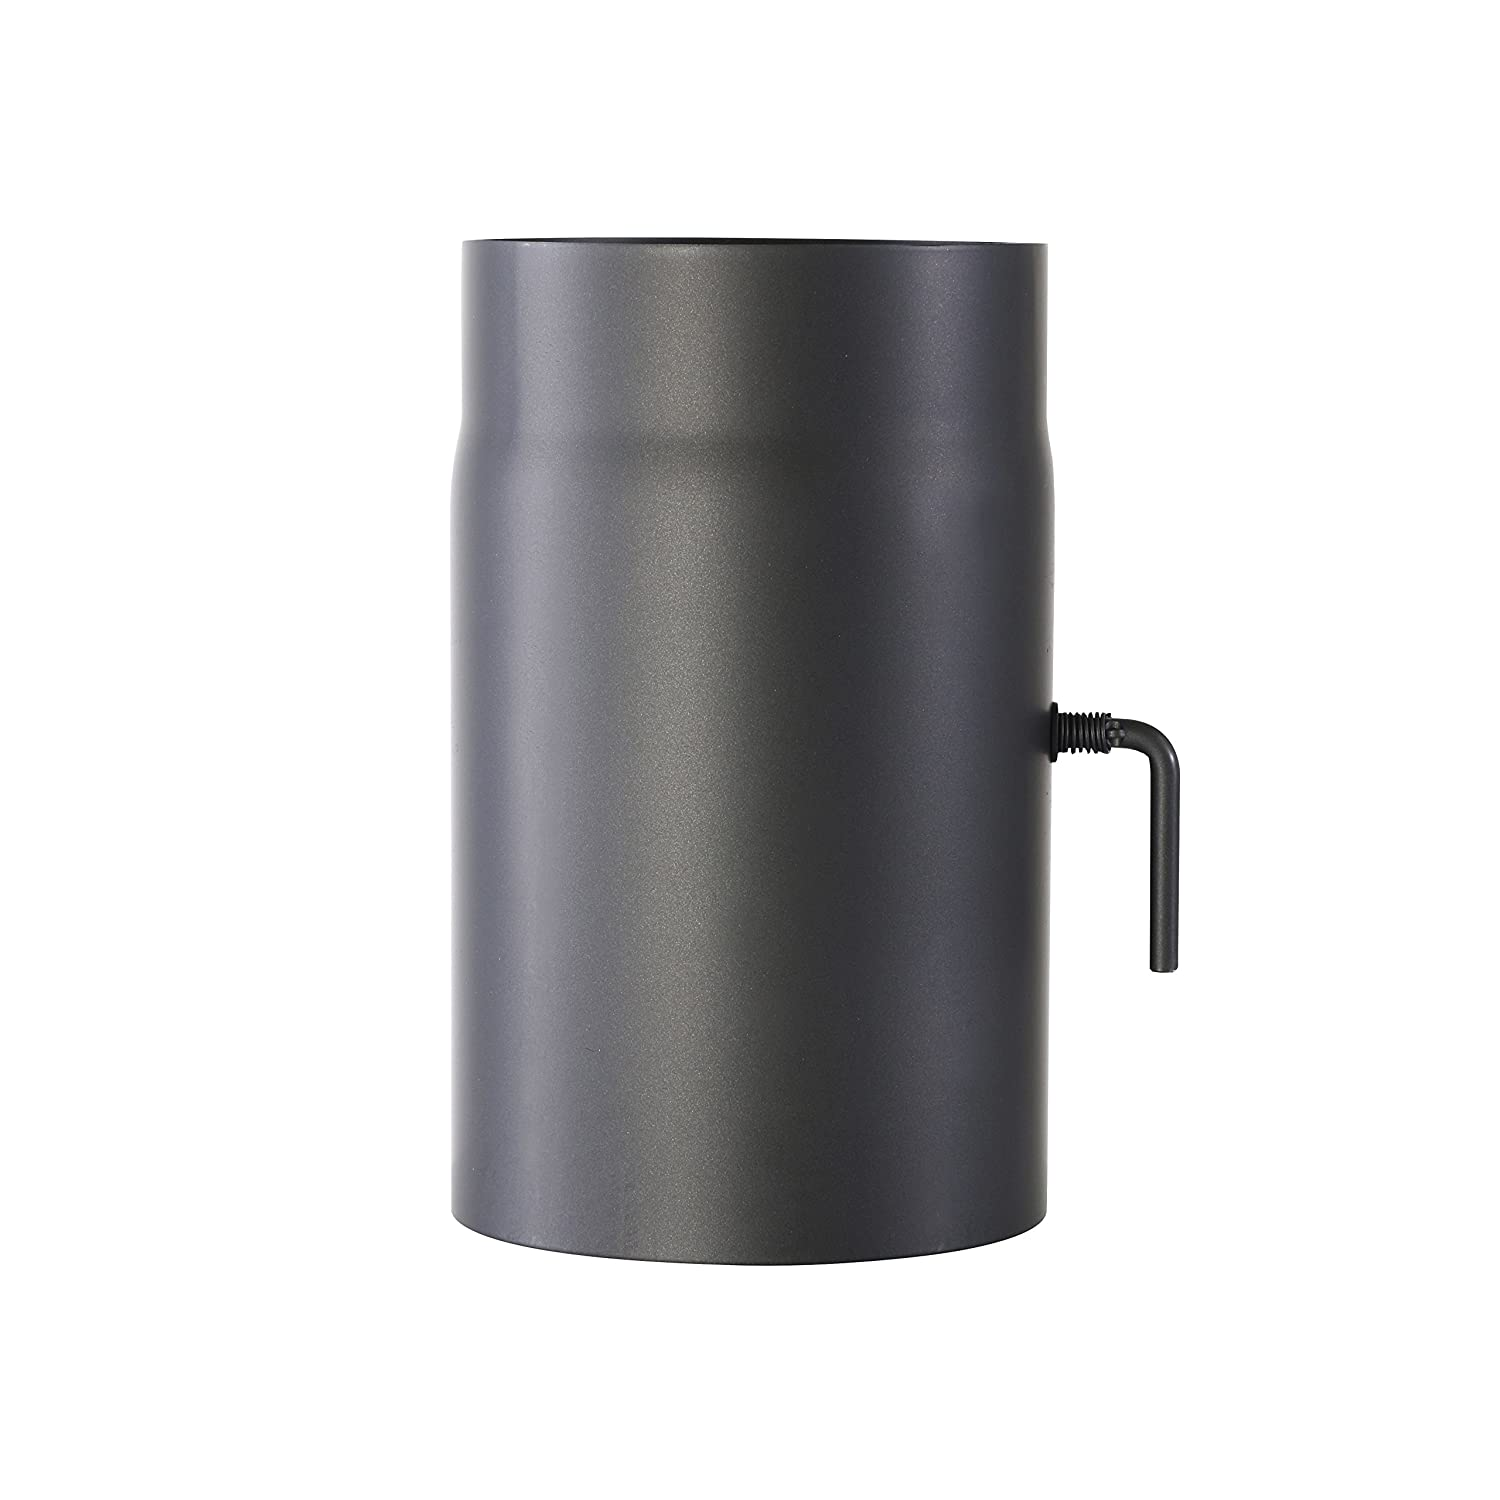 Kamino - Flam Ø 150 mm Stove Pipe with Throttle, approx. 250 mm Straight Length Flue Pipe with Damper, Steel Stove Pipe Extension with with Throttle Flap, Heat Resistant Senotherm Coating, Grey 331884